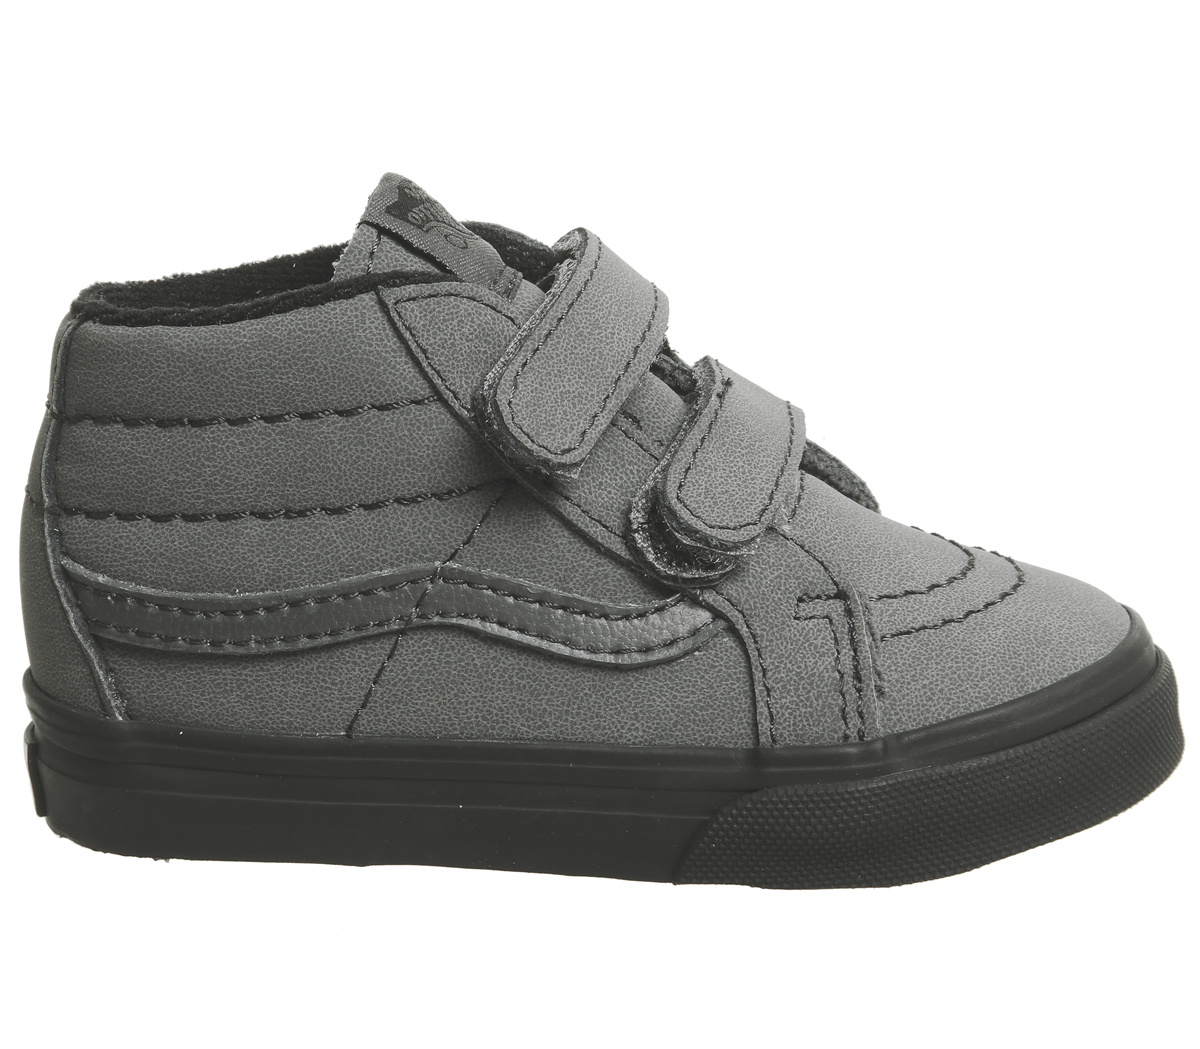 9532cc81745a Sentinel Kids Vans Sk8 Mid Reissue Toddler Trainers Vansbuck Forged Iron  Black Kids